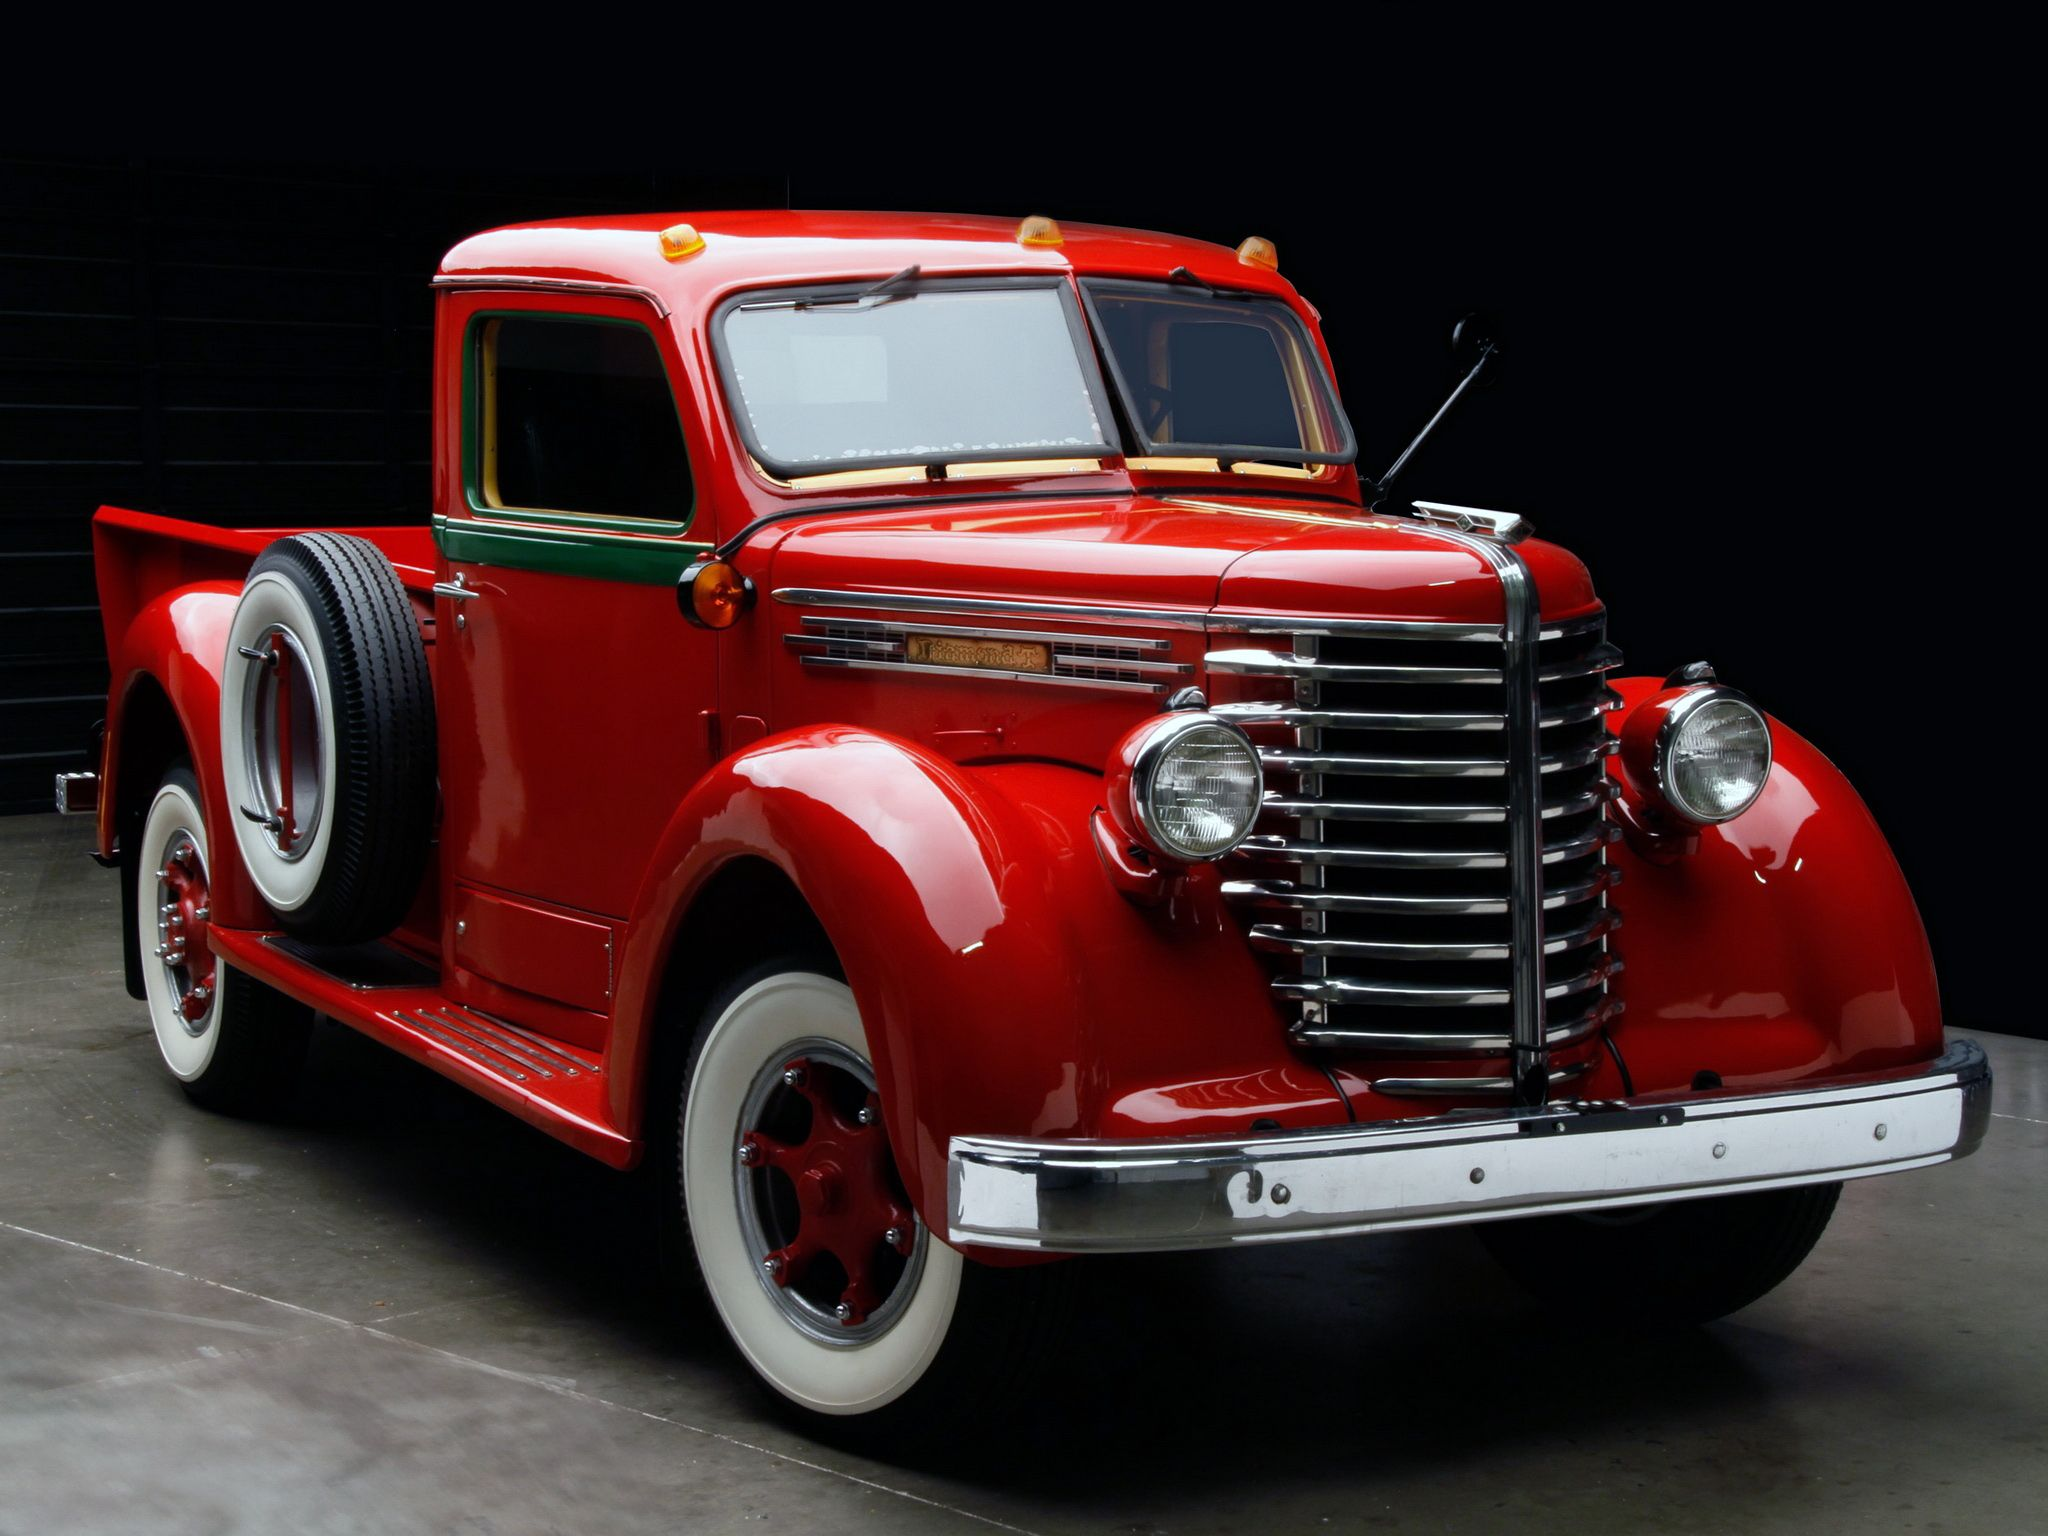 1949 Diamond T 201 Pickup This Is A Beautiful Truck Brought To